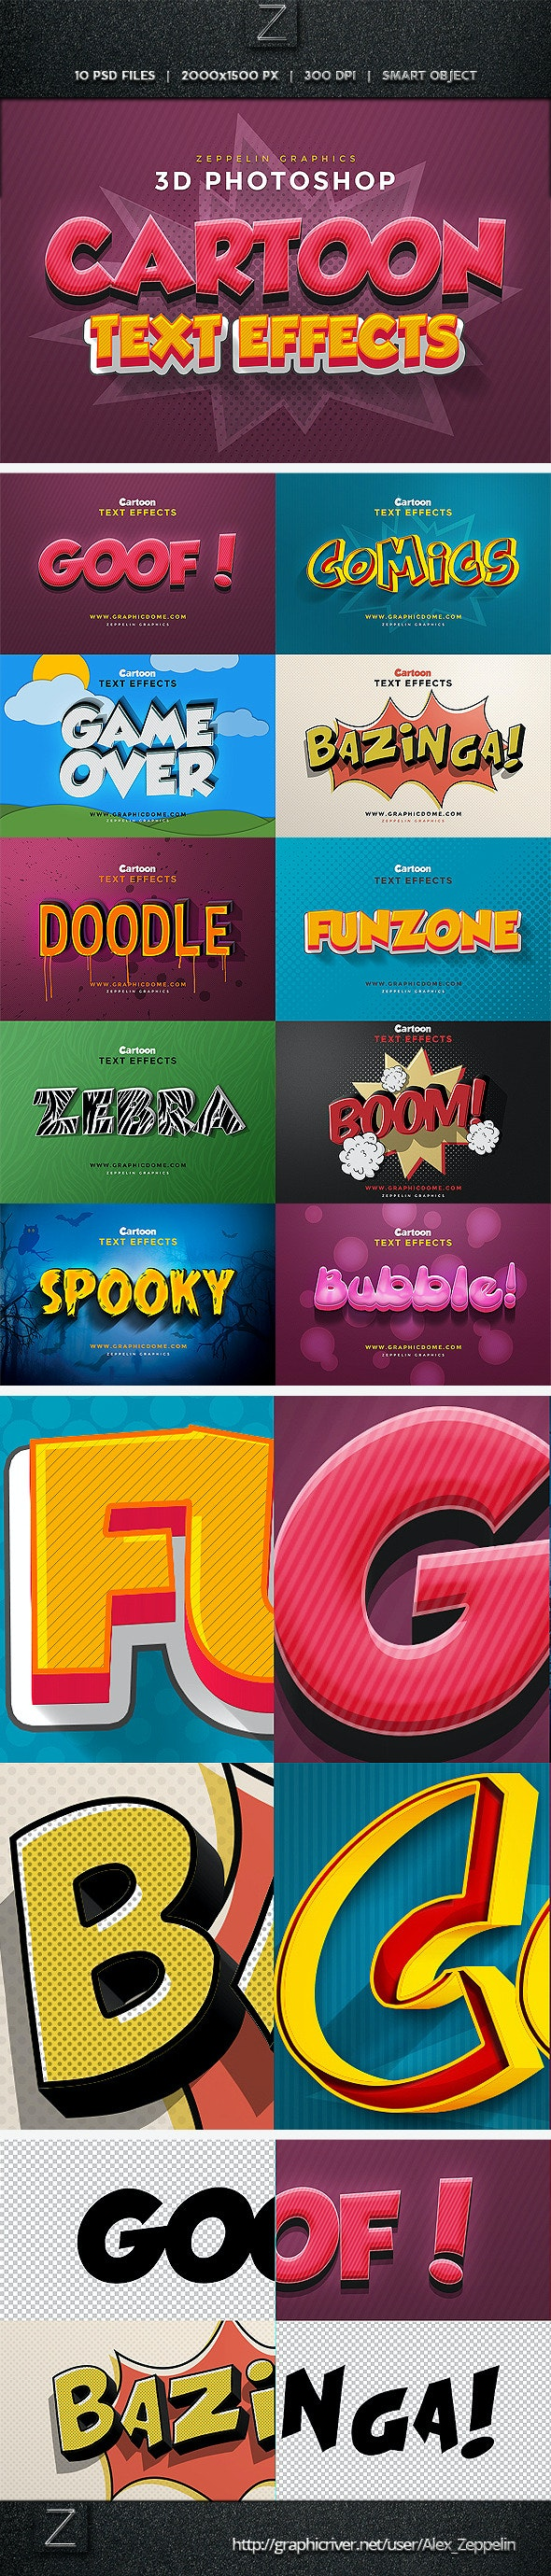 Cartoon Text Effects - Text Effects Styles